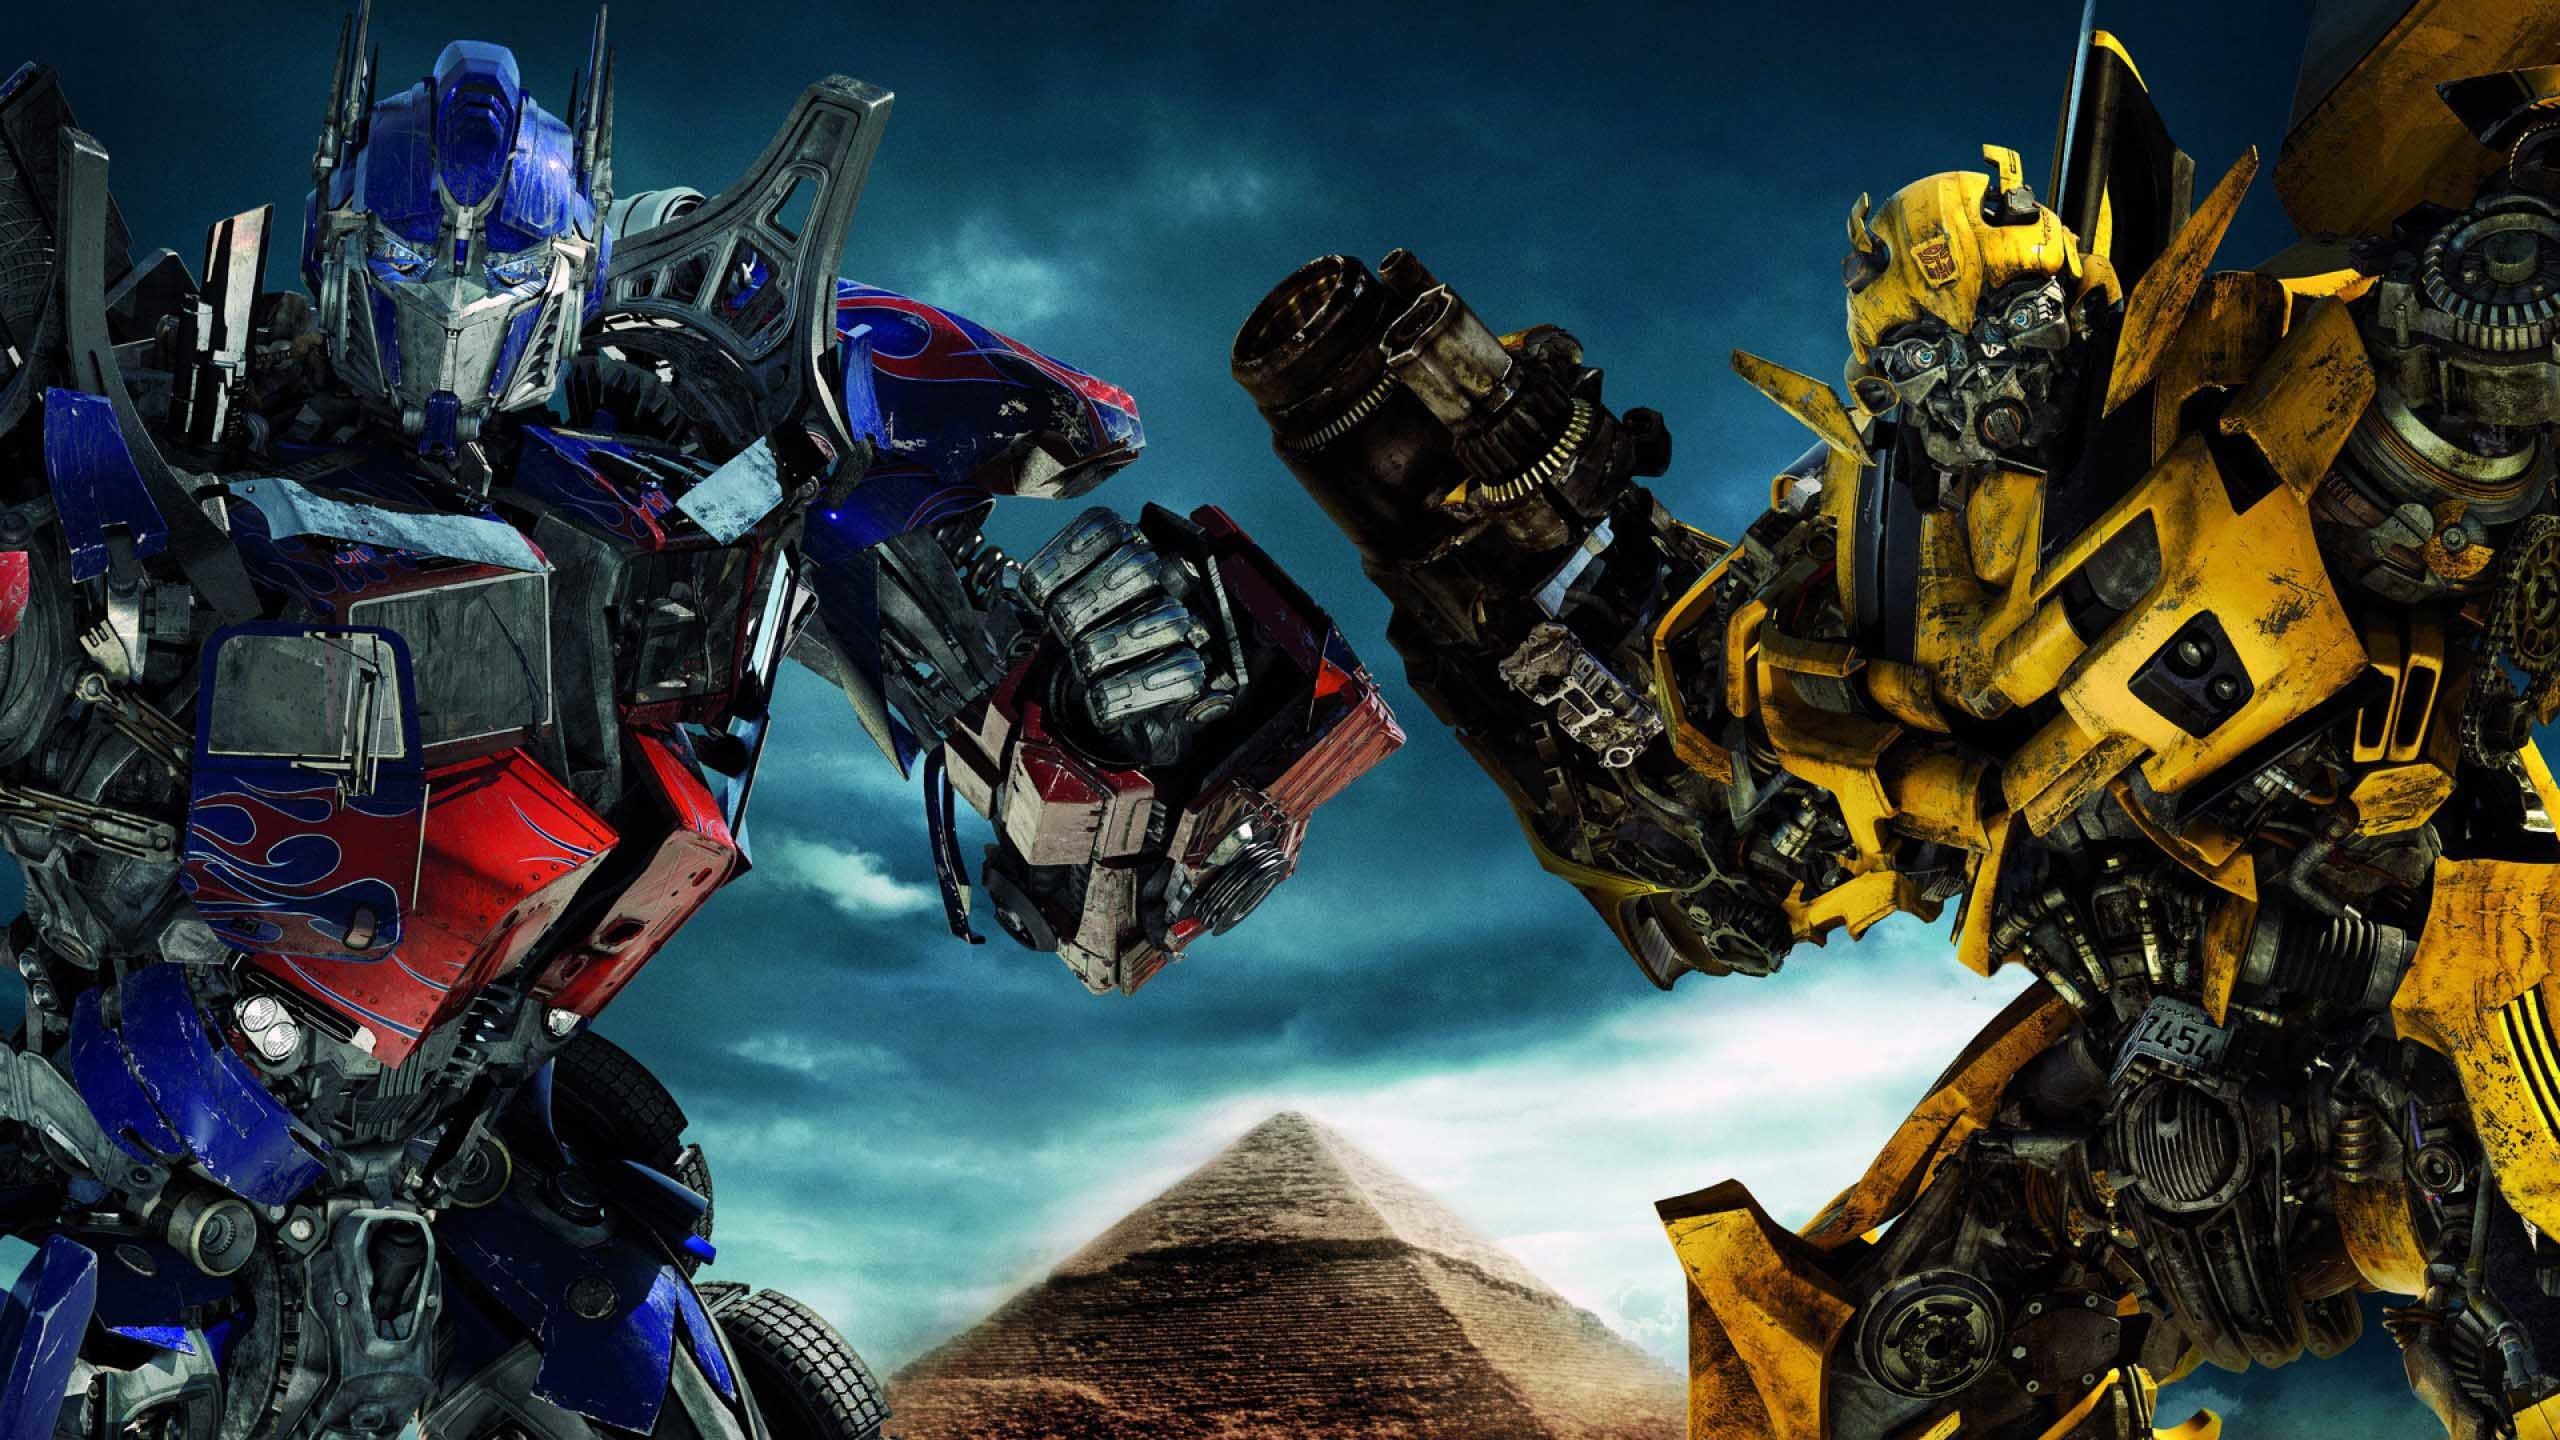 2048x1152 Preview wallpaper transformers age of extinction, optimus prime, transformers 2048x1152